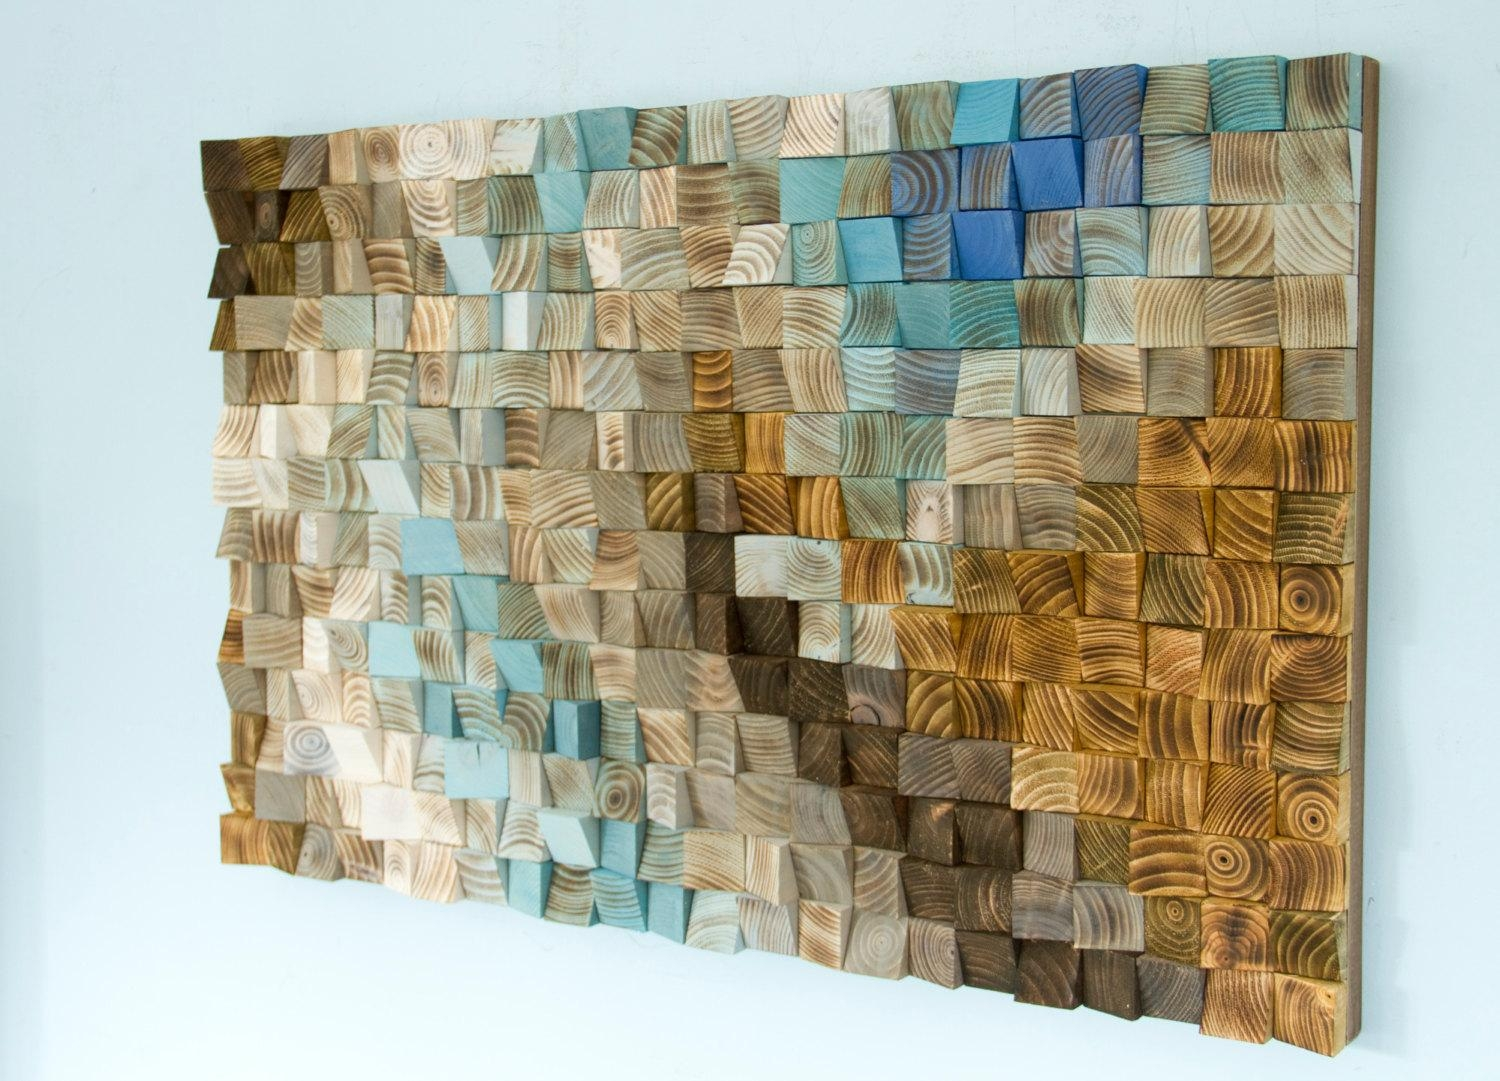 Wood Wall Art Mosaic, Office Wall Decor, Geometric Art, 24 X 36 Regarding Teal And Brown Wall Art (Image 20 of 20)